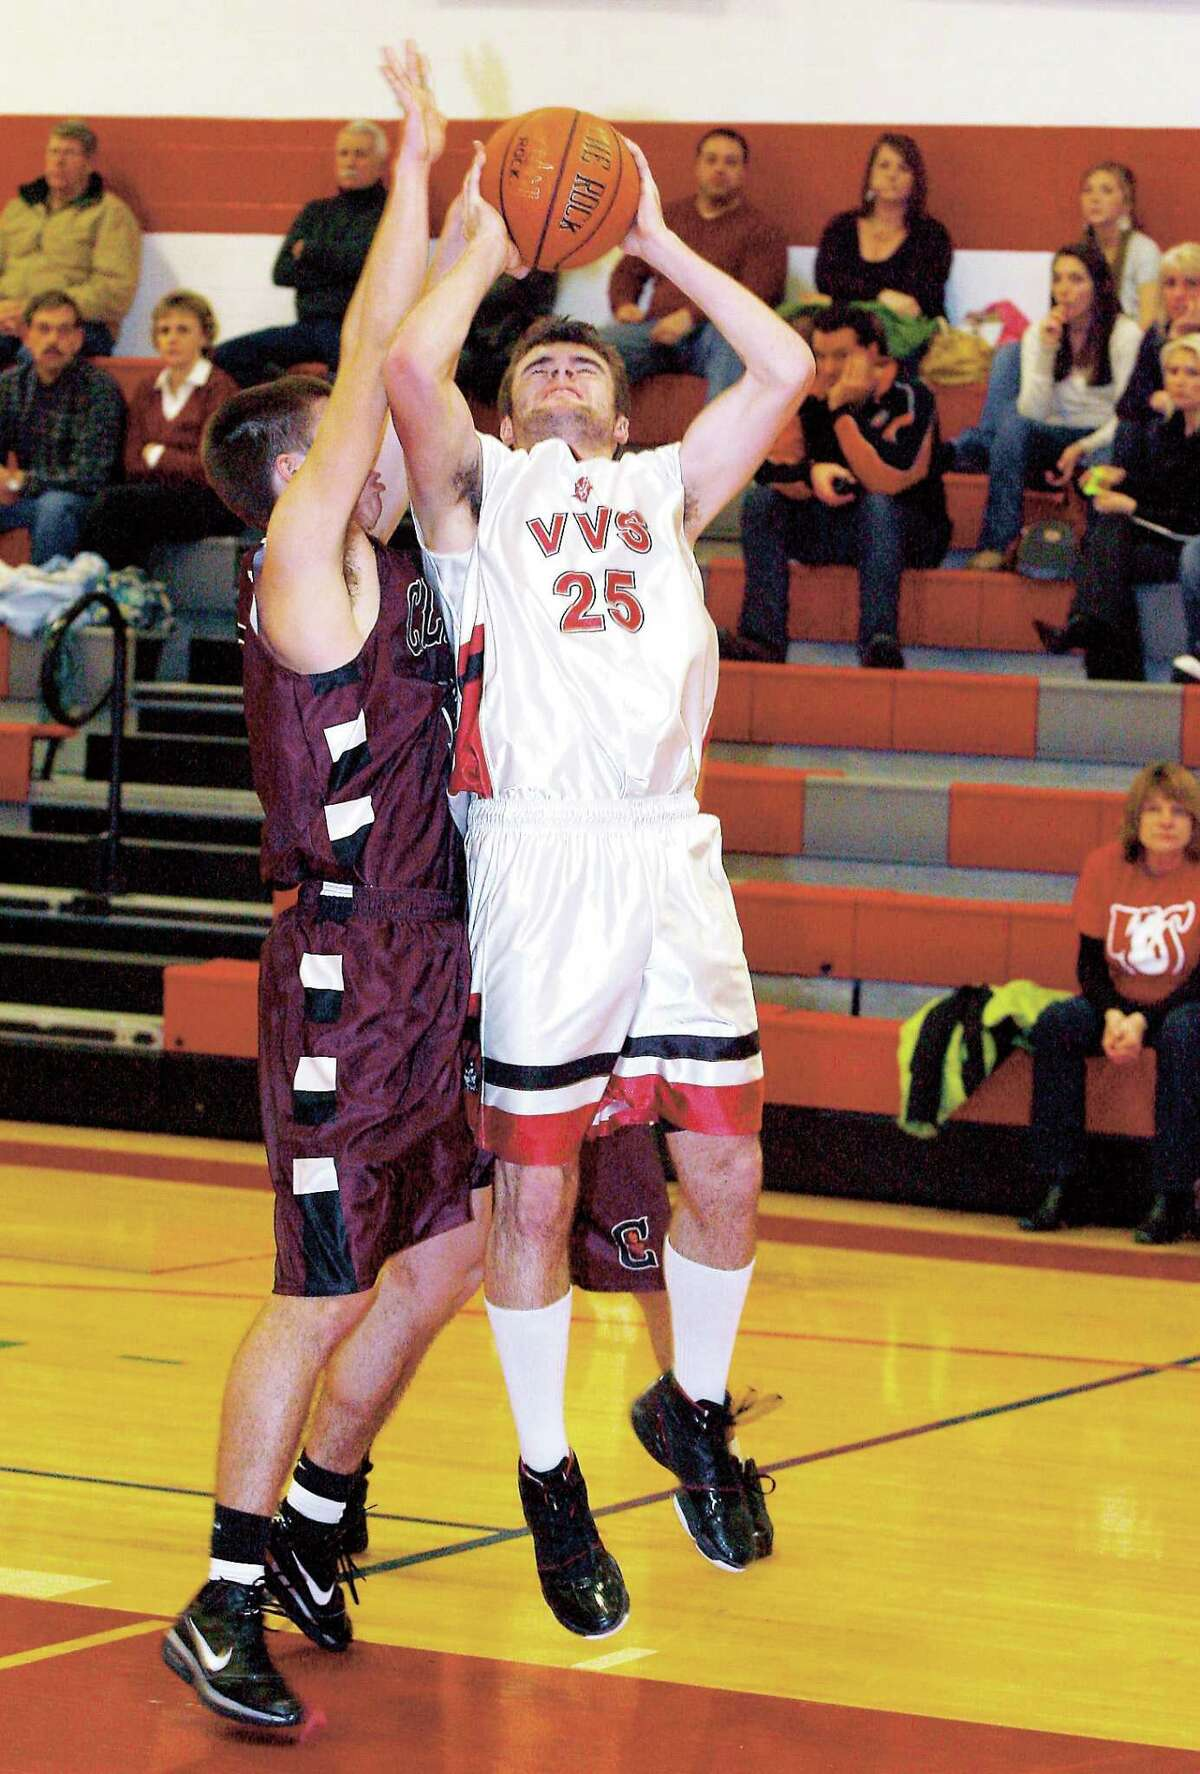 Dispatch File Photo by JOHN HAEGER VVS' Nash Robb (25) puts up a shot as Clinton's Devin Comelius (12) defends in a Tri-Valley League game at VVS on January 18, 2011. Both schools decided to leave the TVL for the 2011-12 school year.